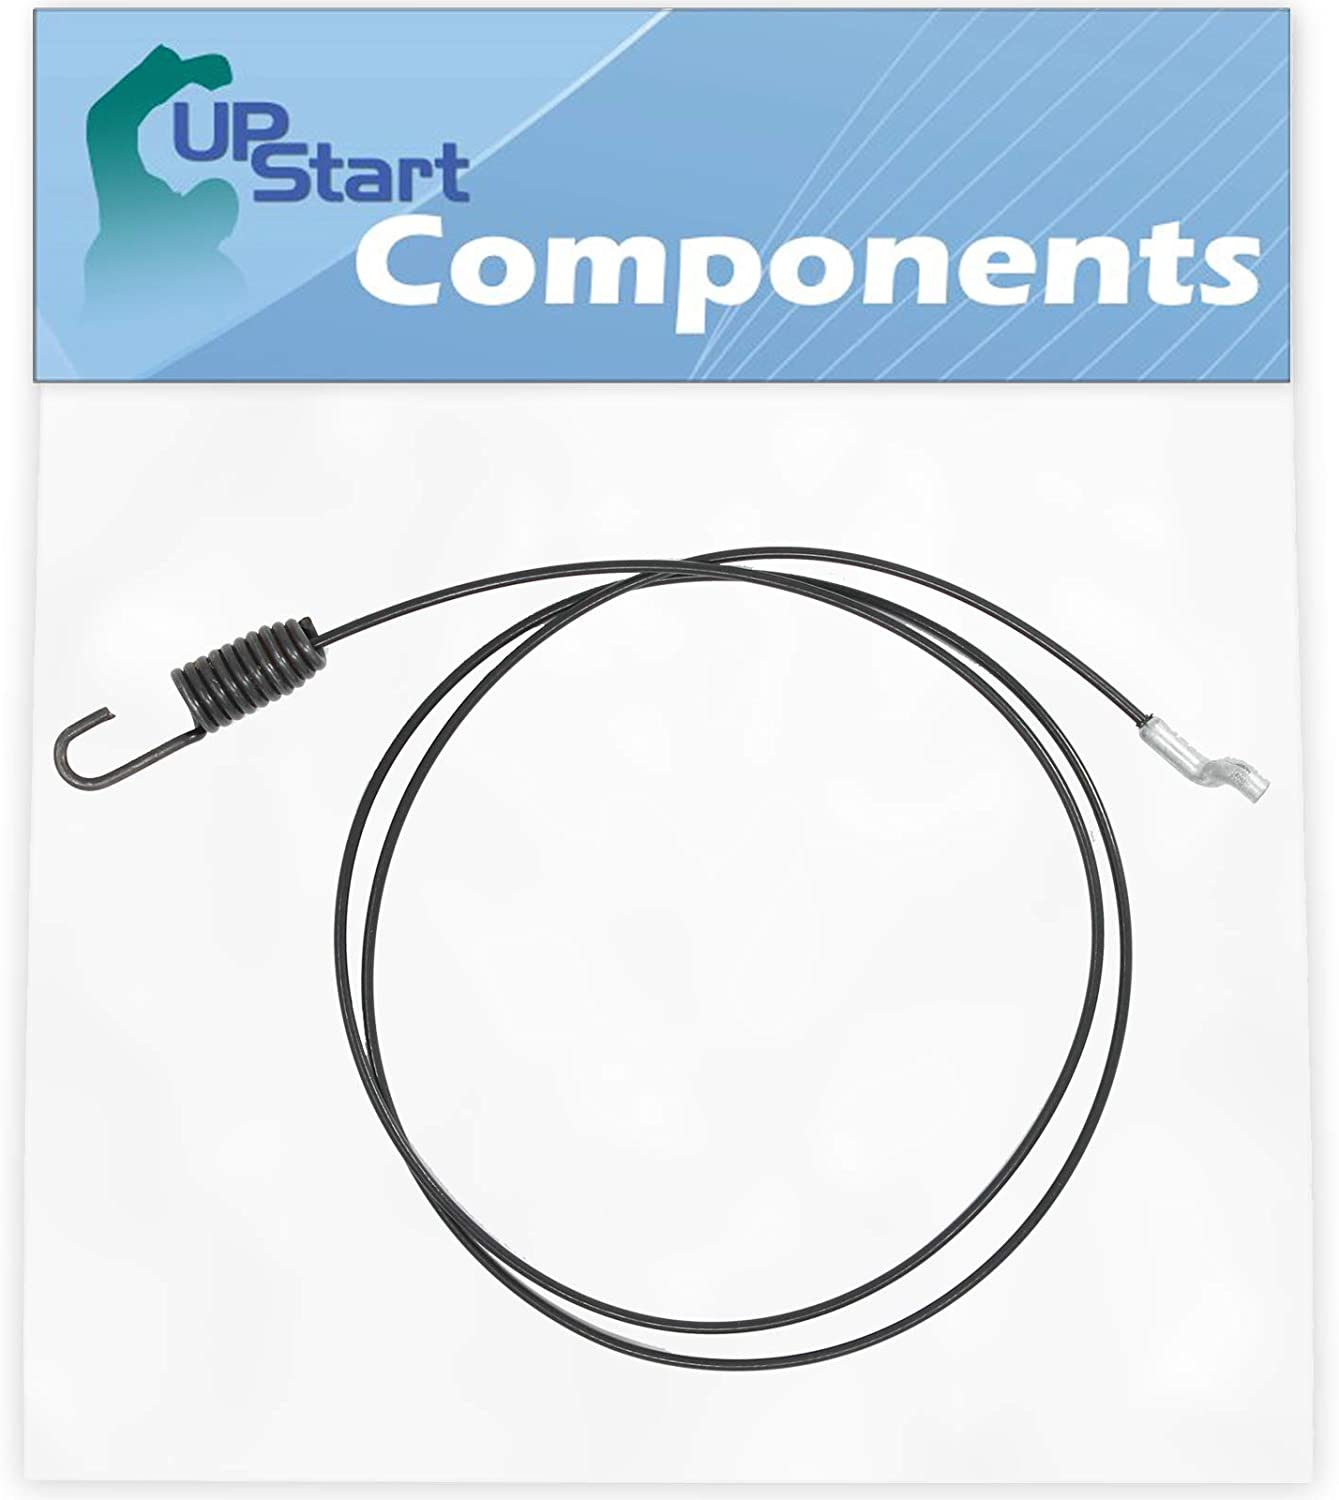 UpStart Components 946-04229B Clutch Cable Replacement for Yard Machines 31AM63FF752 (2012) Snowblower - Compatible with 746-04229 Clutch Drive Cable